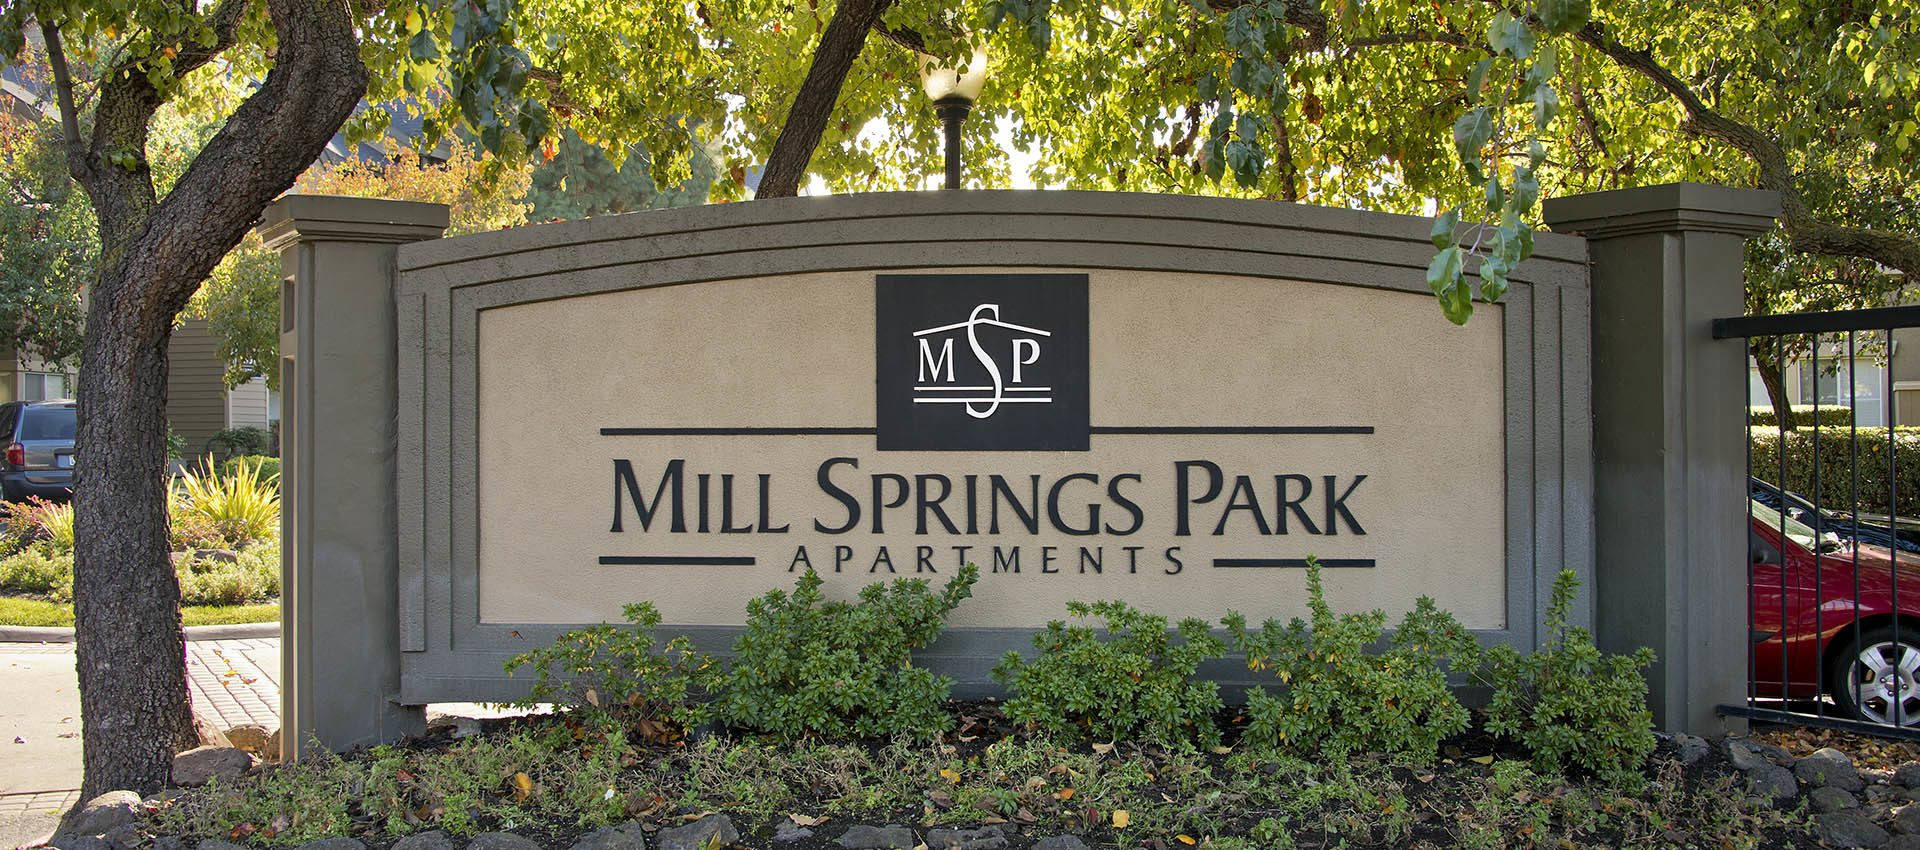 Signage at Mill Springs Park Apartment Homes in CA